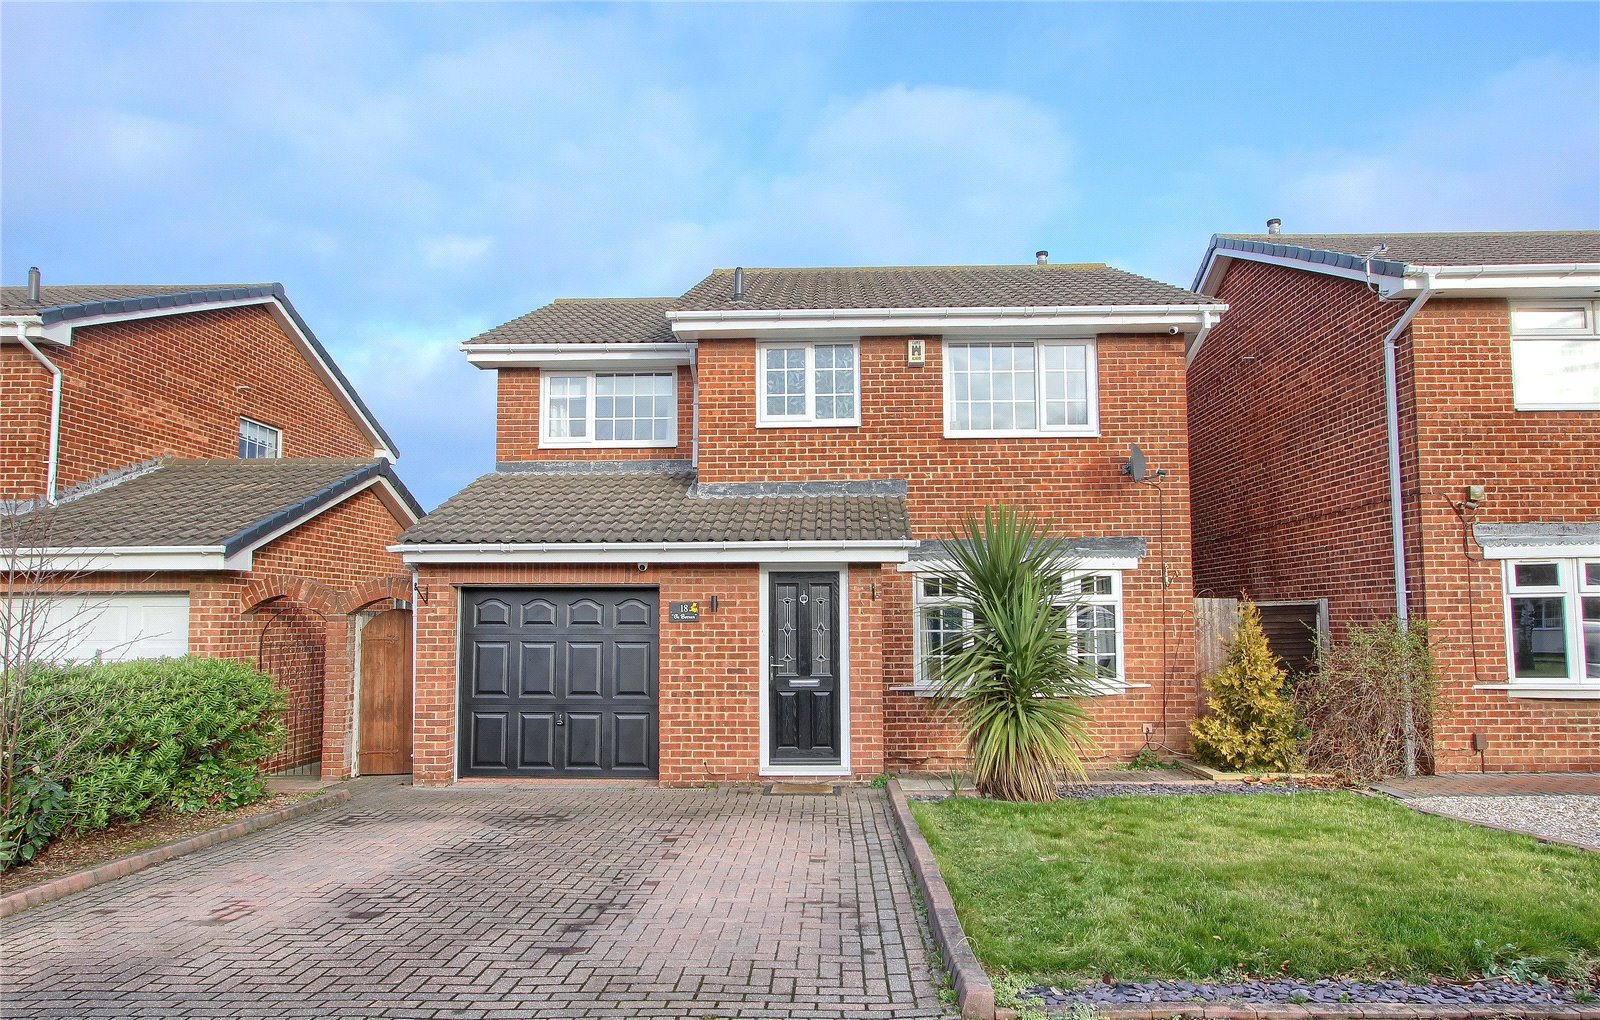 4 bed for sale in High Stone Close, Redcar  - Property Image 1